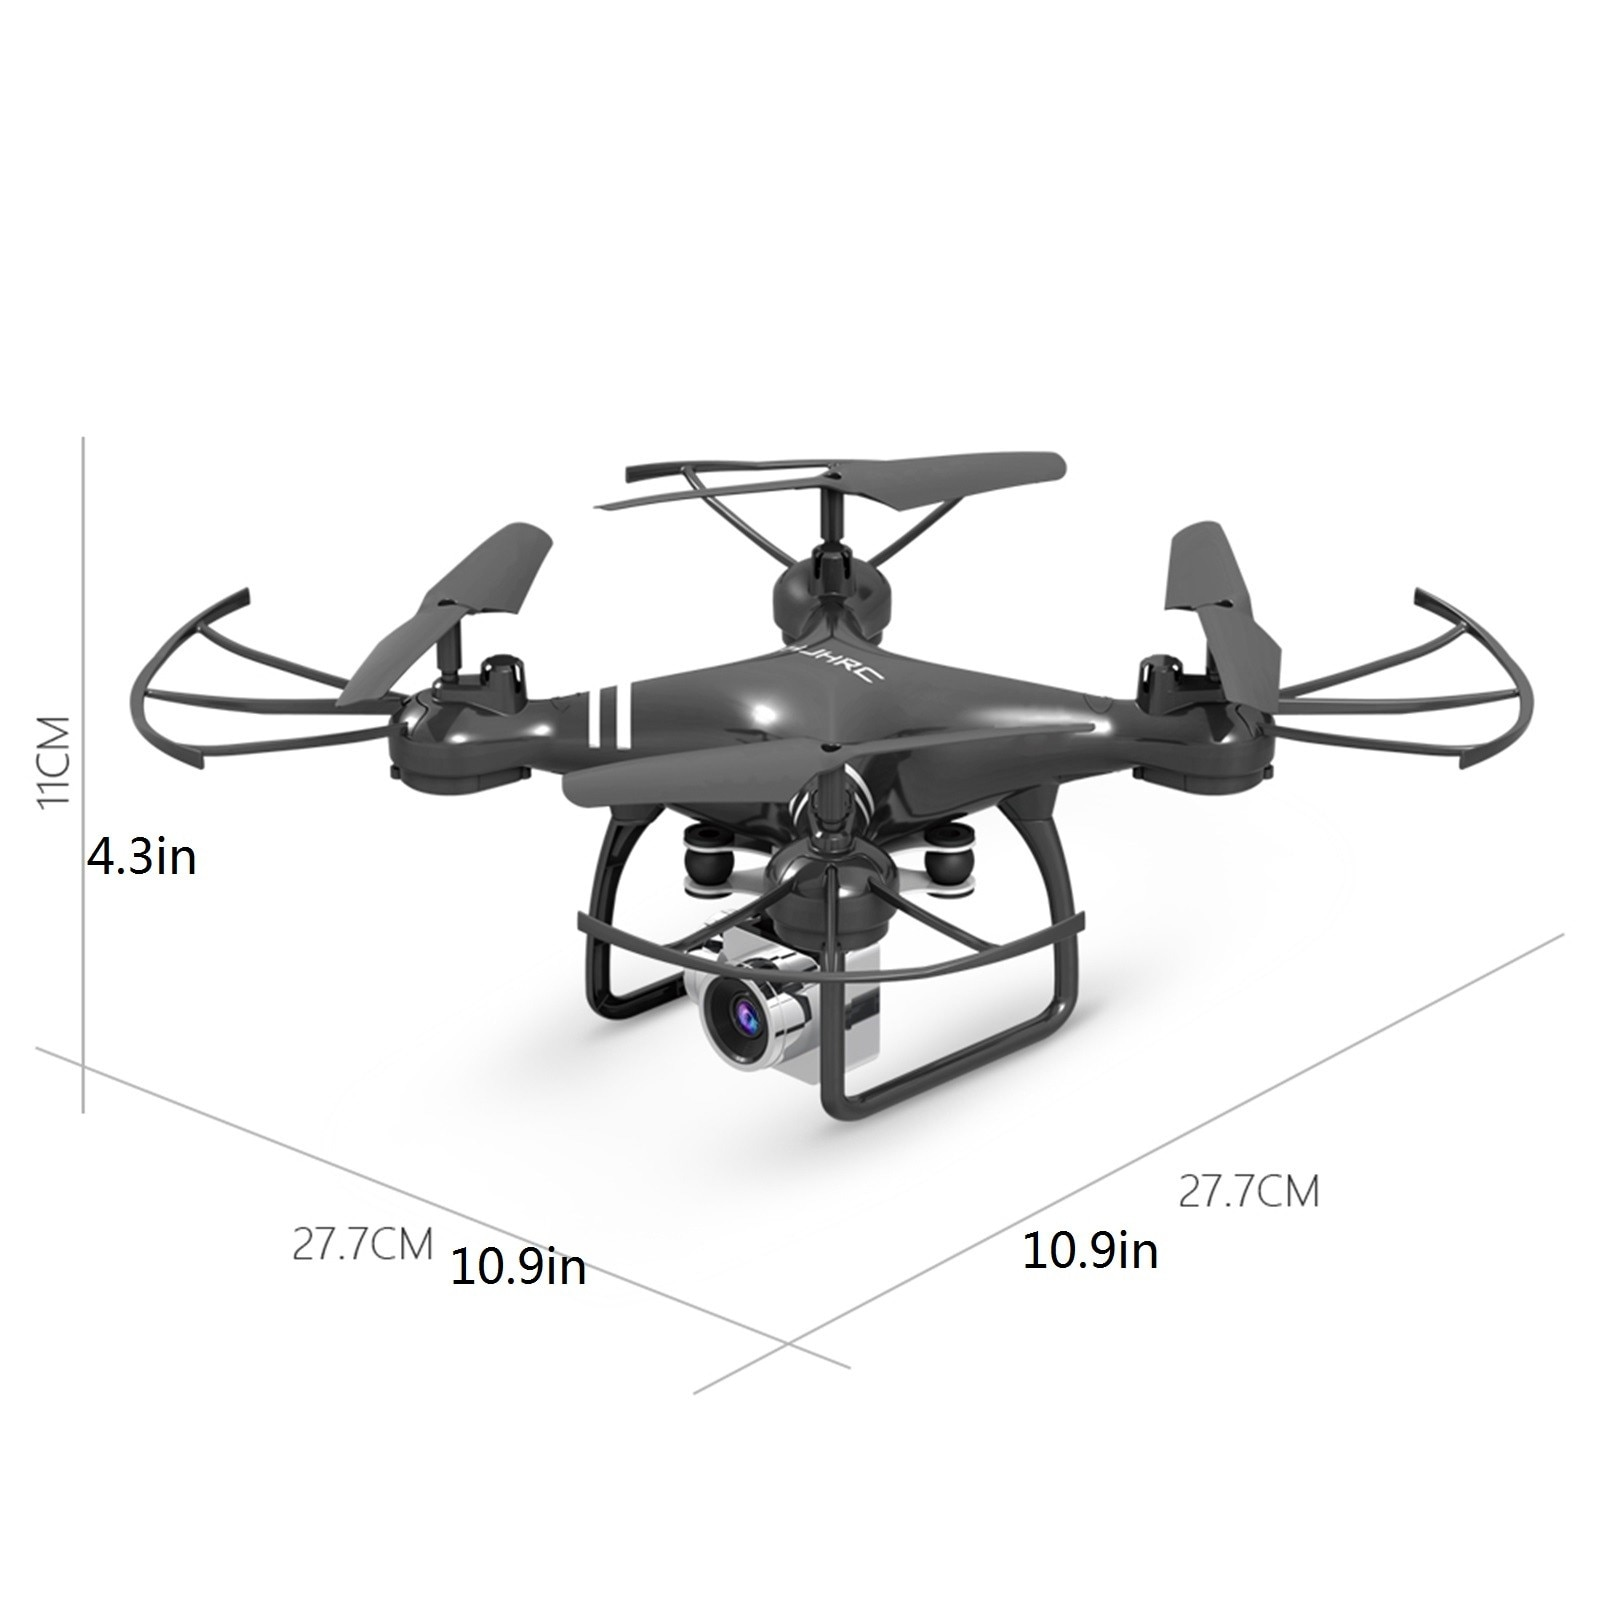 Hf176e81e0a614ba5a2b62b51c3fc2f1bl - Hjhrc Four-axis Aerial Photography Aircraft Drone With Camera Hd 4k Wifi Fpv Foldable Drone Height Holding Headless Quadcopter